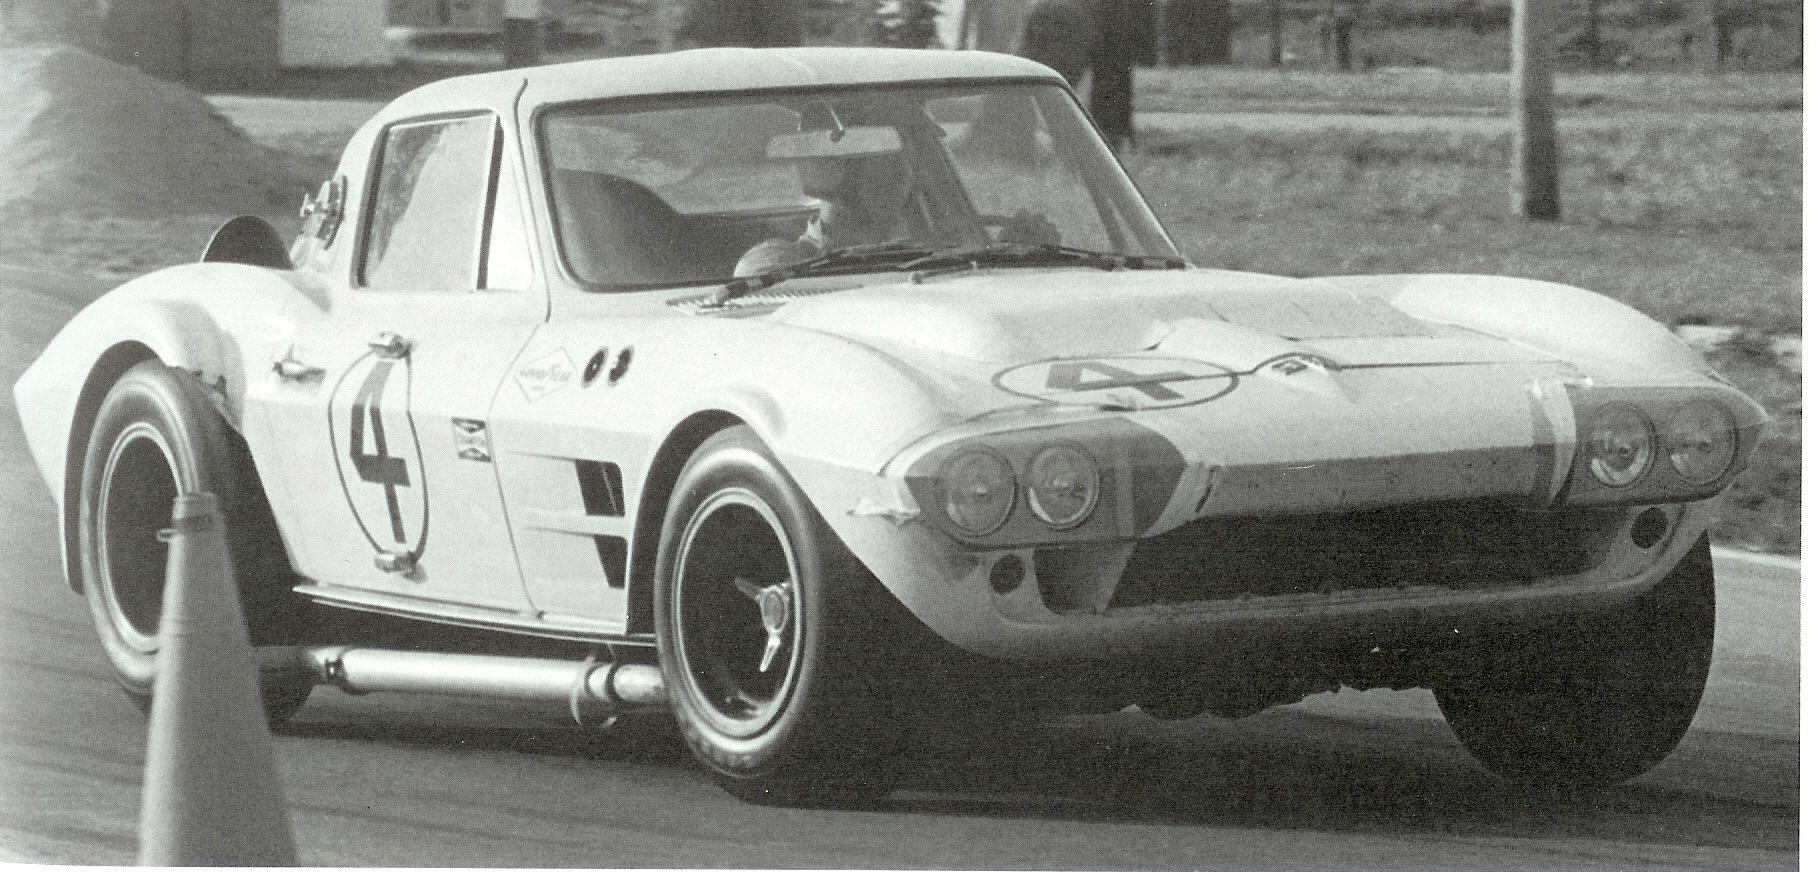 Corvette_GS_005_1964_#4_Sebring_Hall-Penske_005.jpg